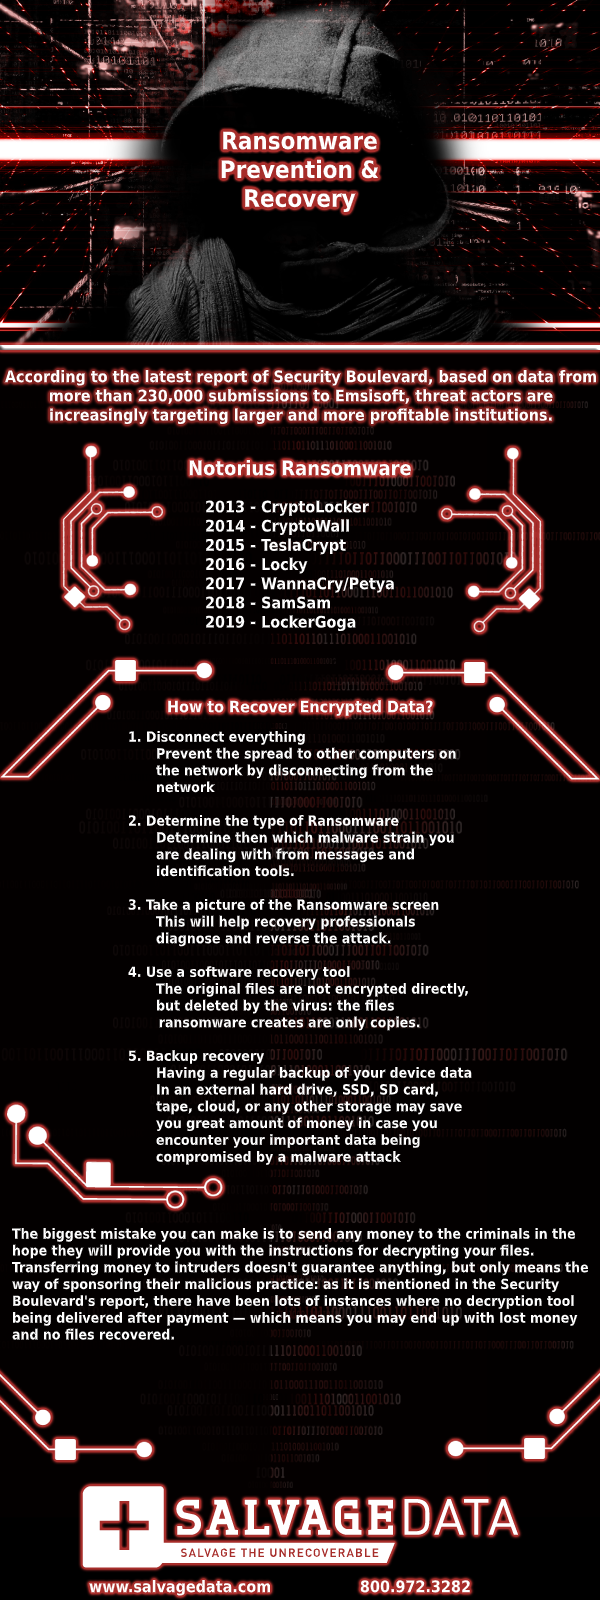 Ransomware Prevention and Recovery Infographic